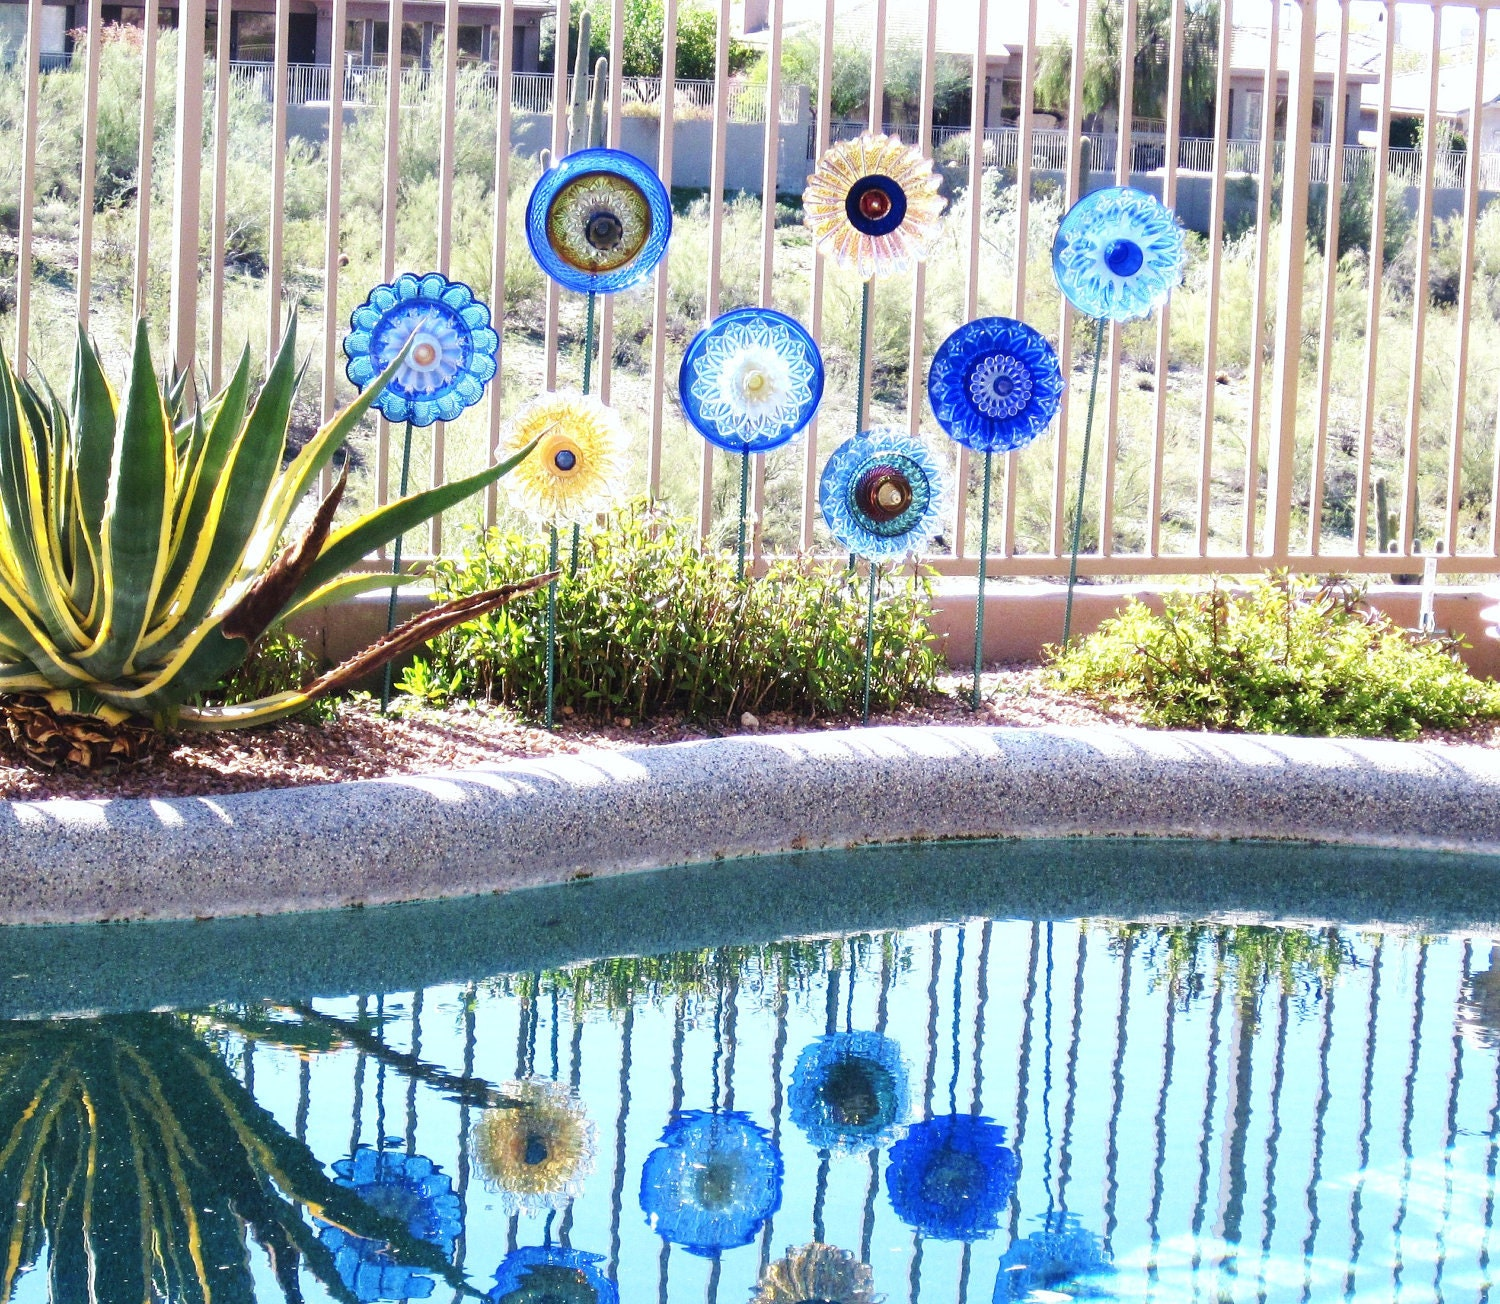 Sale garden art glass plate flower decor upcycled glassware for Flower garden decorations